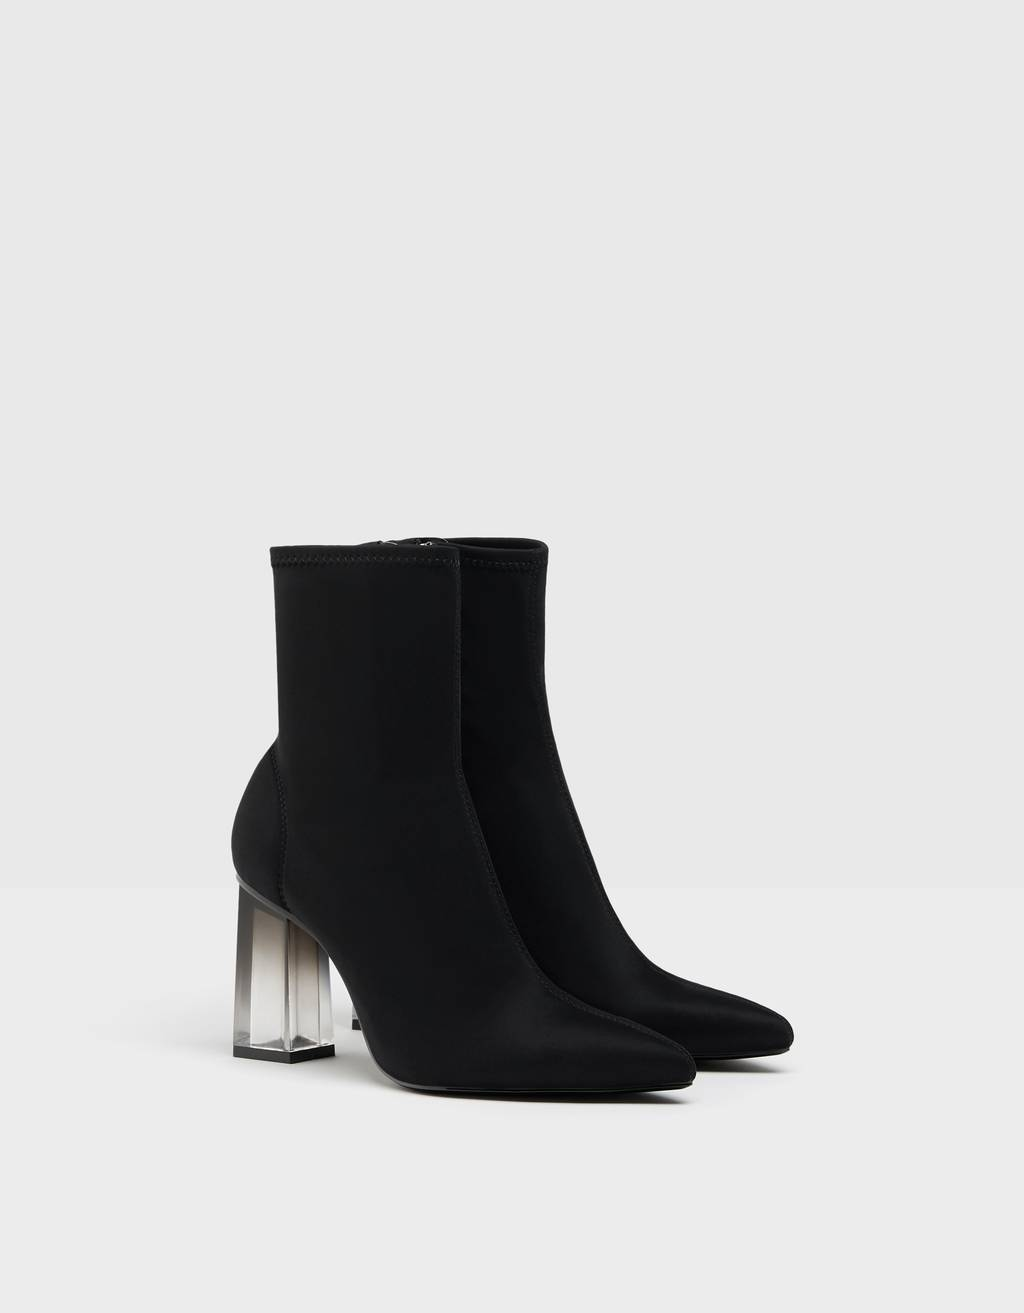 Fitted ankle boots with methacrylate heels